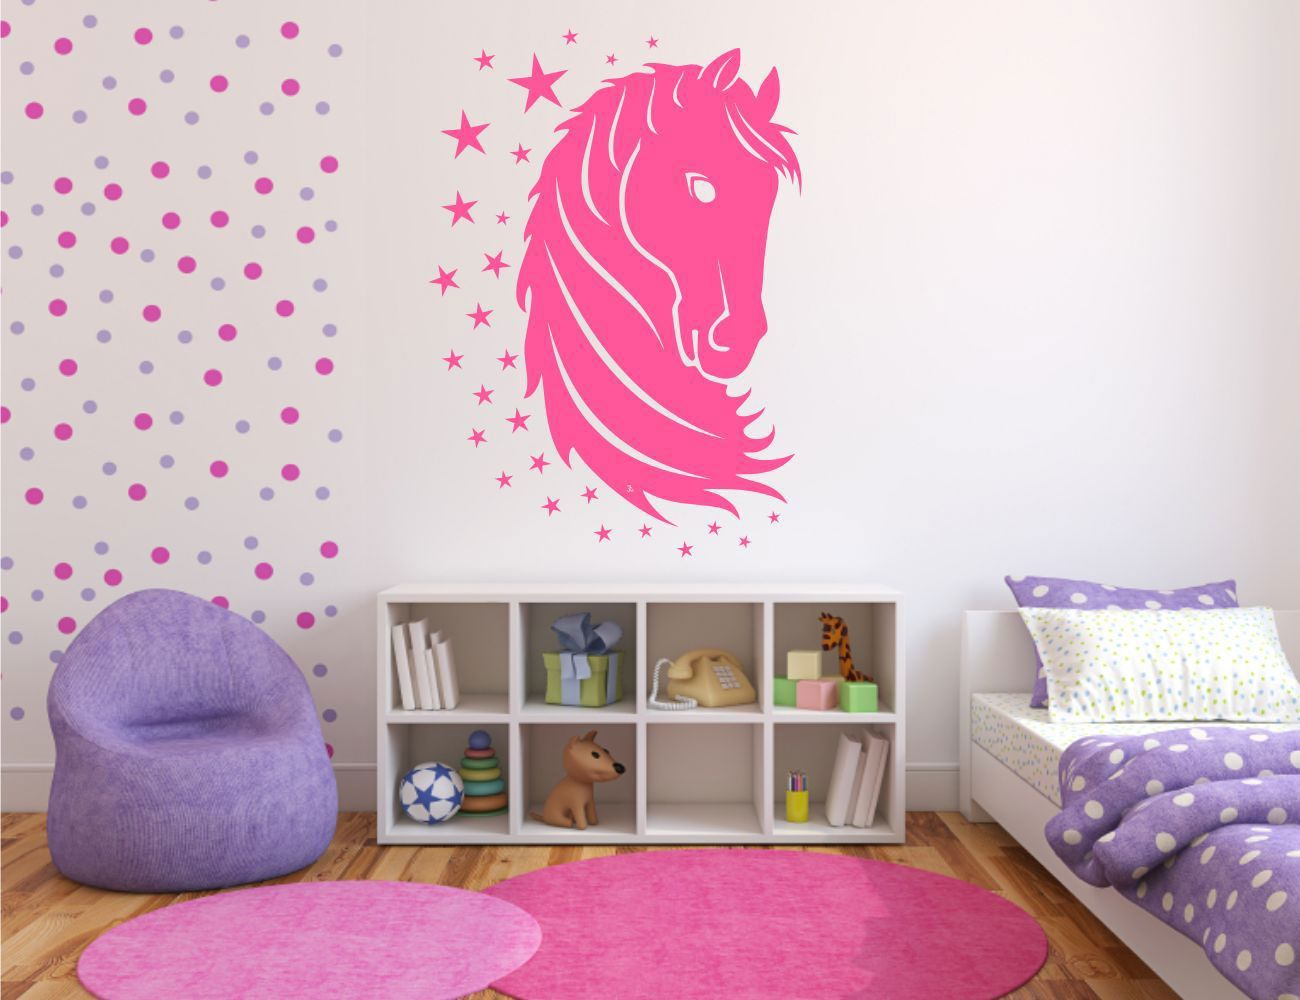 cute designs for walls | , Wonderful Teenage Bedroom Designs Collection  2014 : Cute Horse Wall